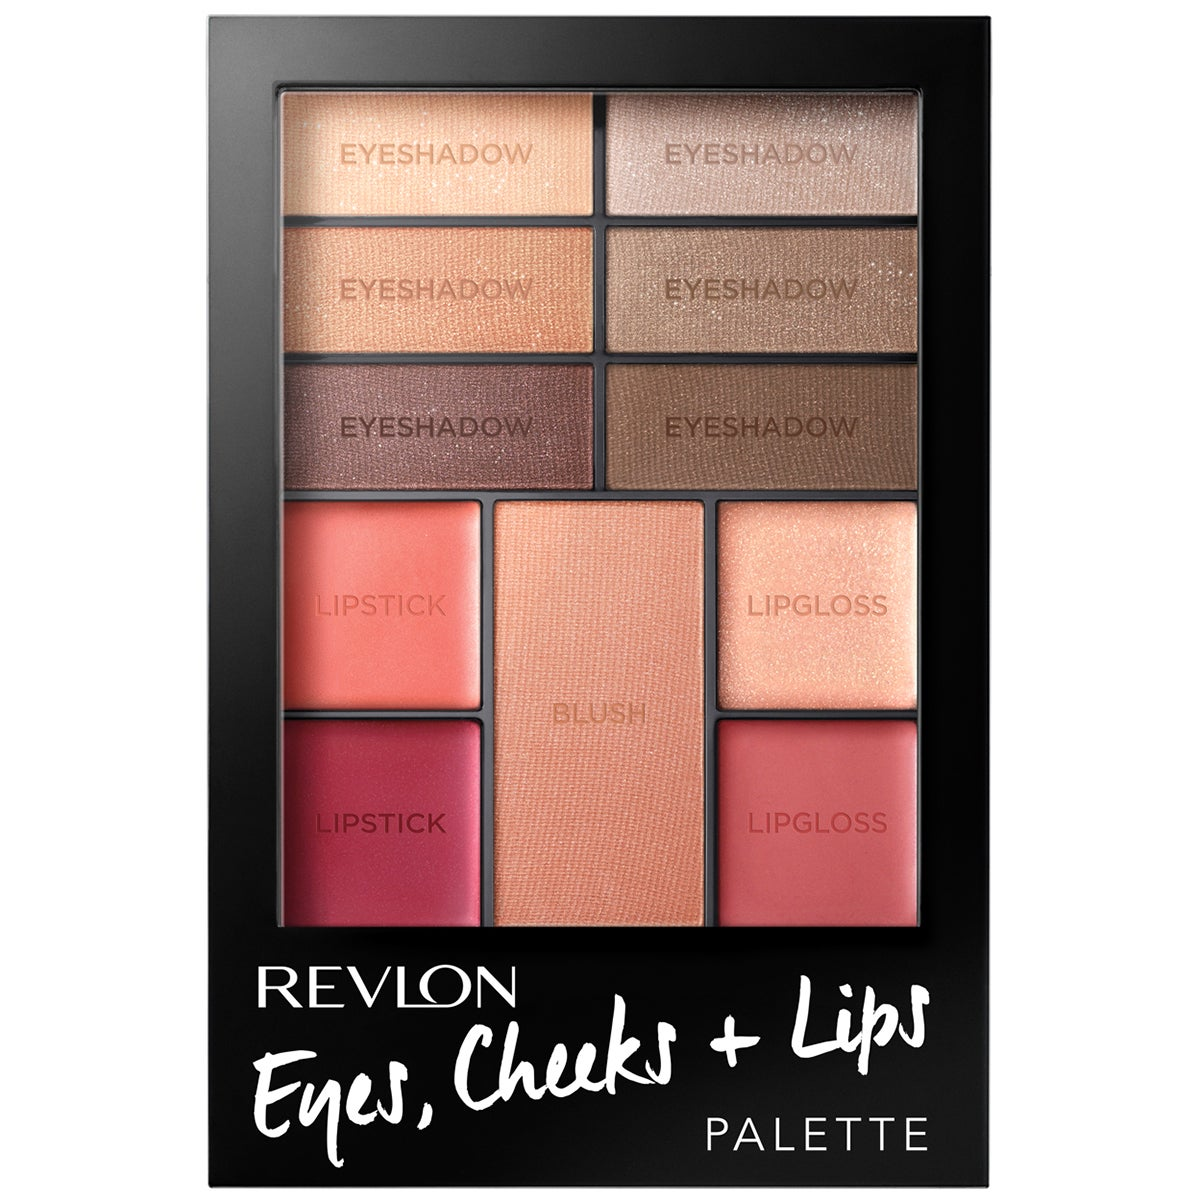 Revlon Cheeks, Eye + Lips Palette